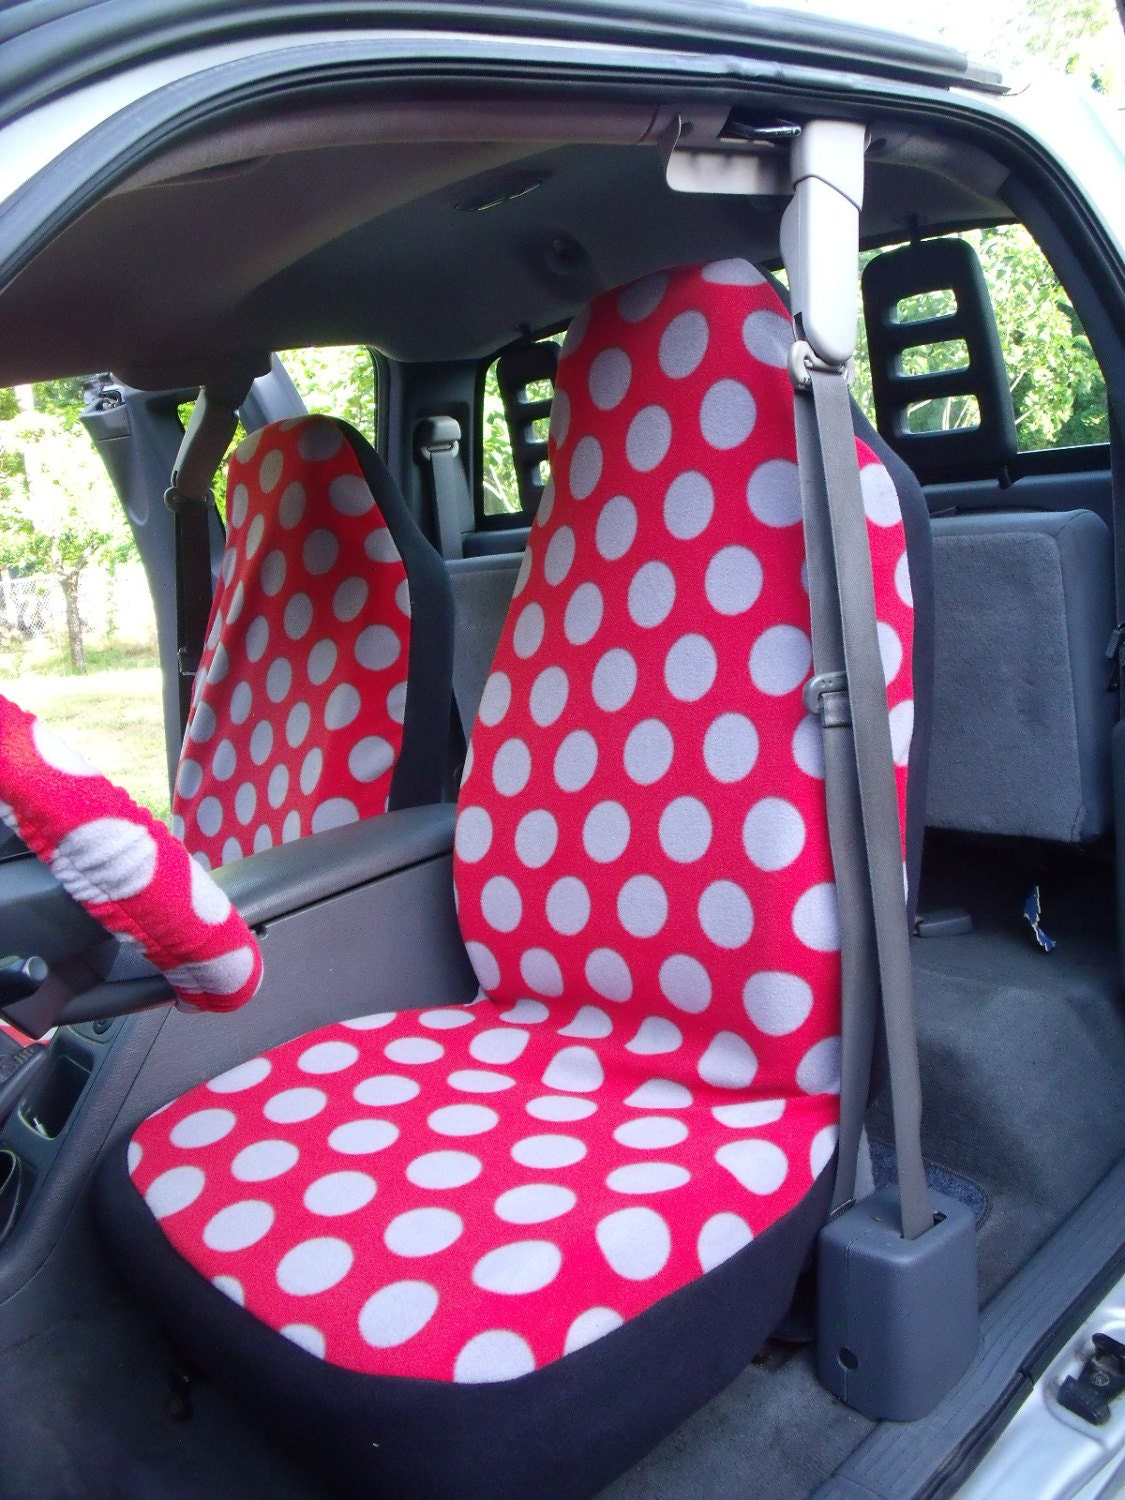 clearance sale 1 set of red with grey dots print car seat. Black Bedroom Furniture Sets. Home Design Ideas